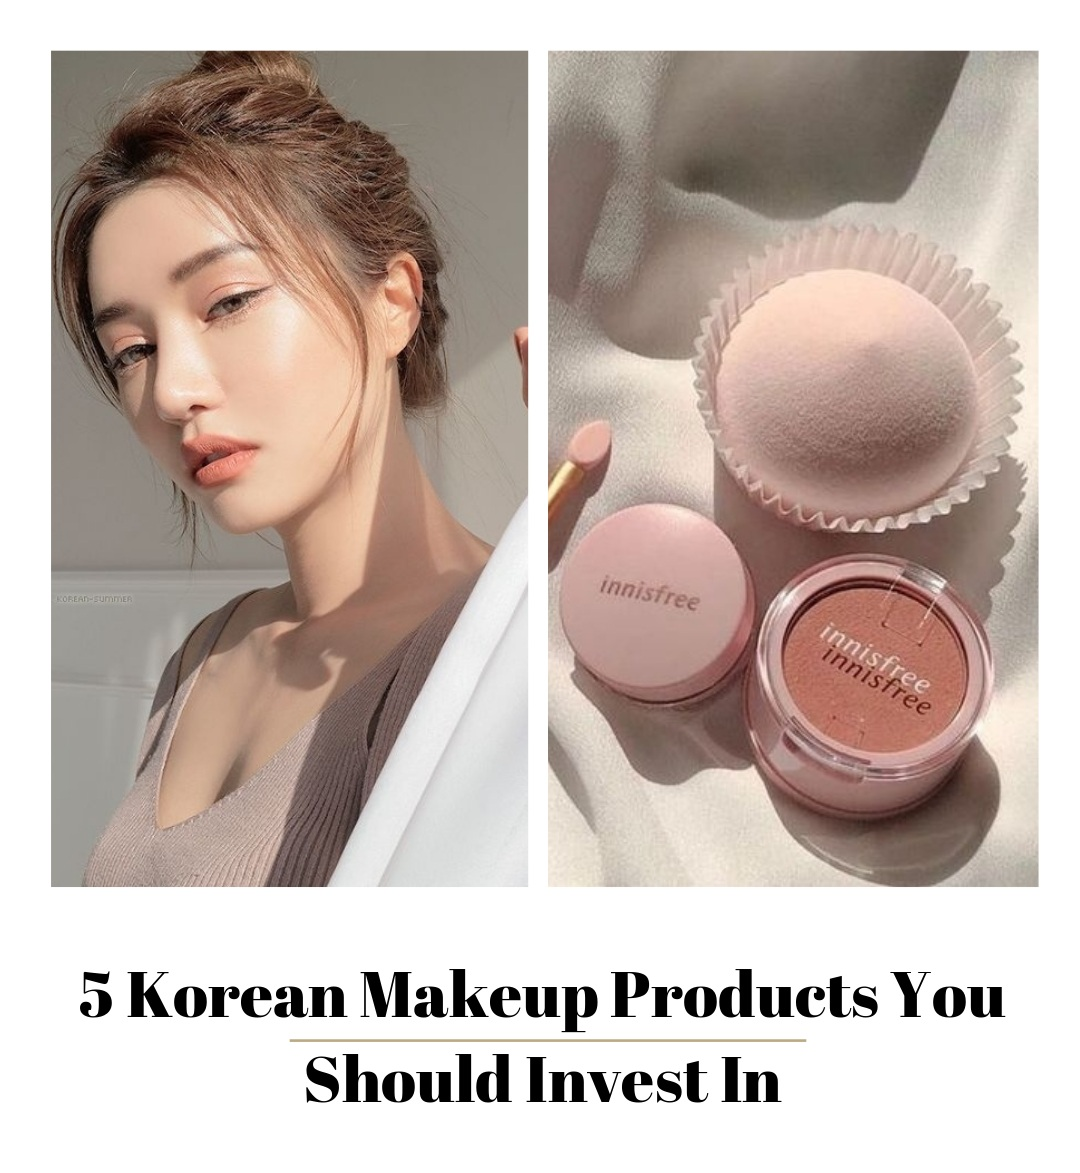 5 Korean Makeup Products You Should